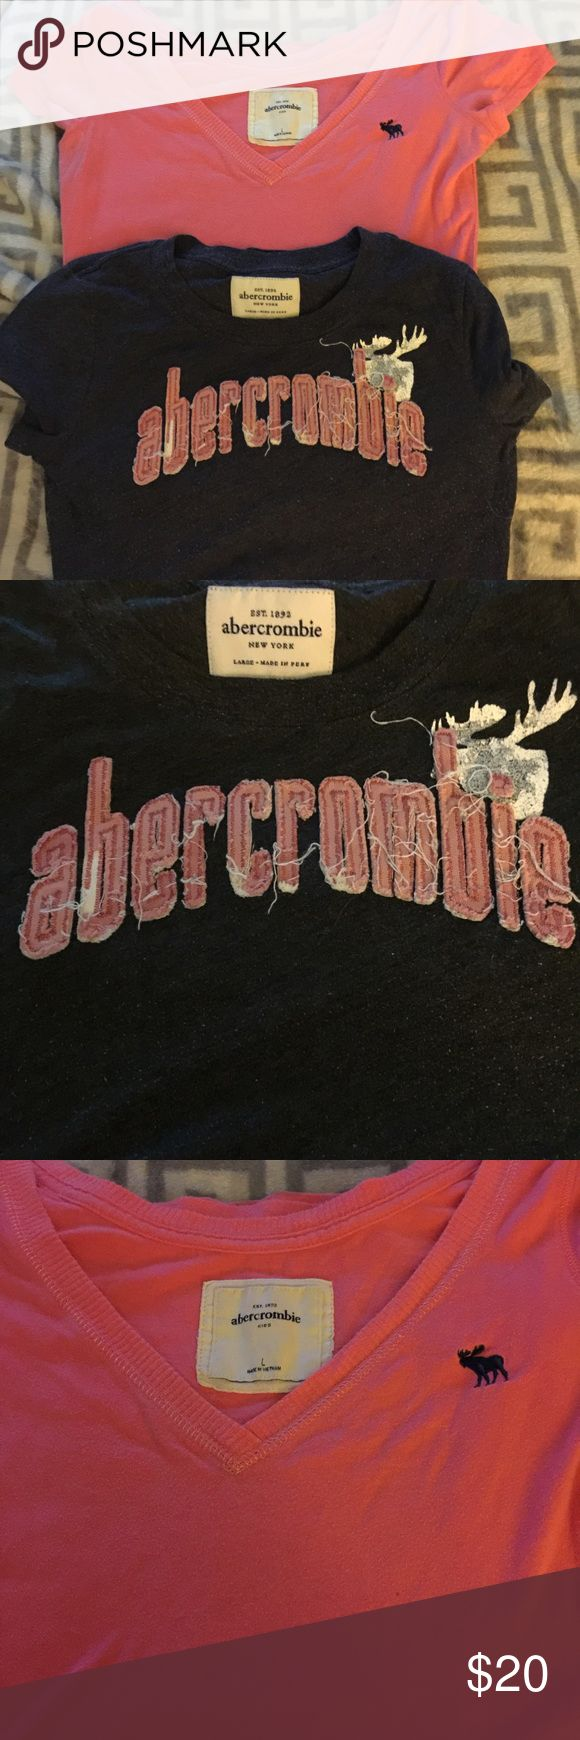 Abercrombie Girls tshirt Both are small , short sleeve- tags both day large but the gray one is smaller and the pink one seems larger/ maybe xlarge. abercrombie kids Shirts & Tops Tees - Short Sleeve